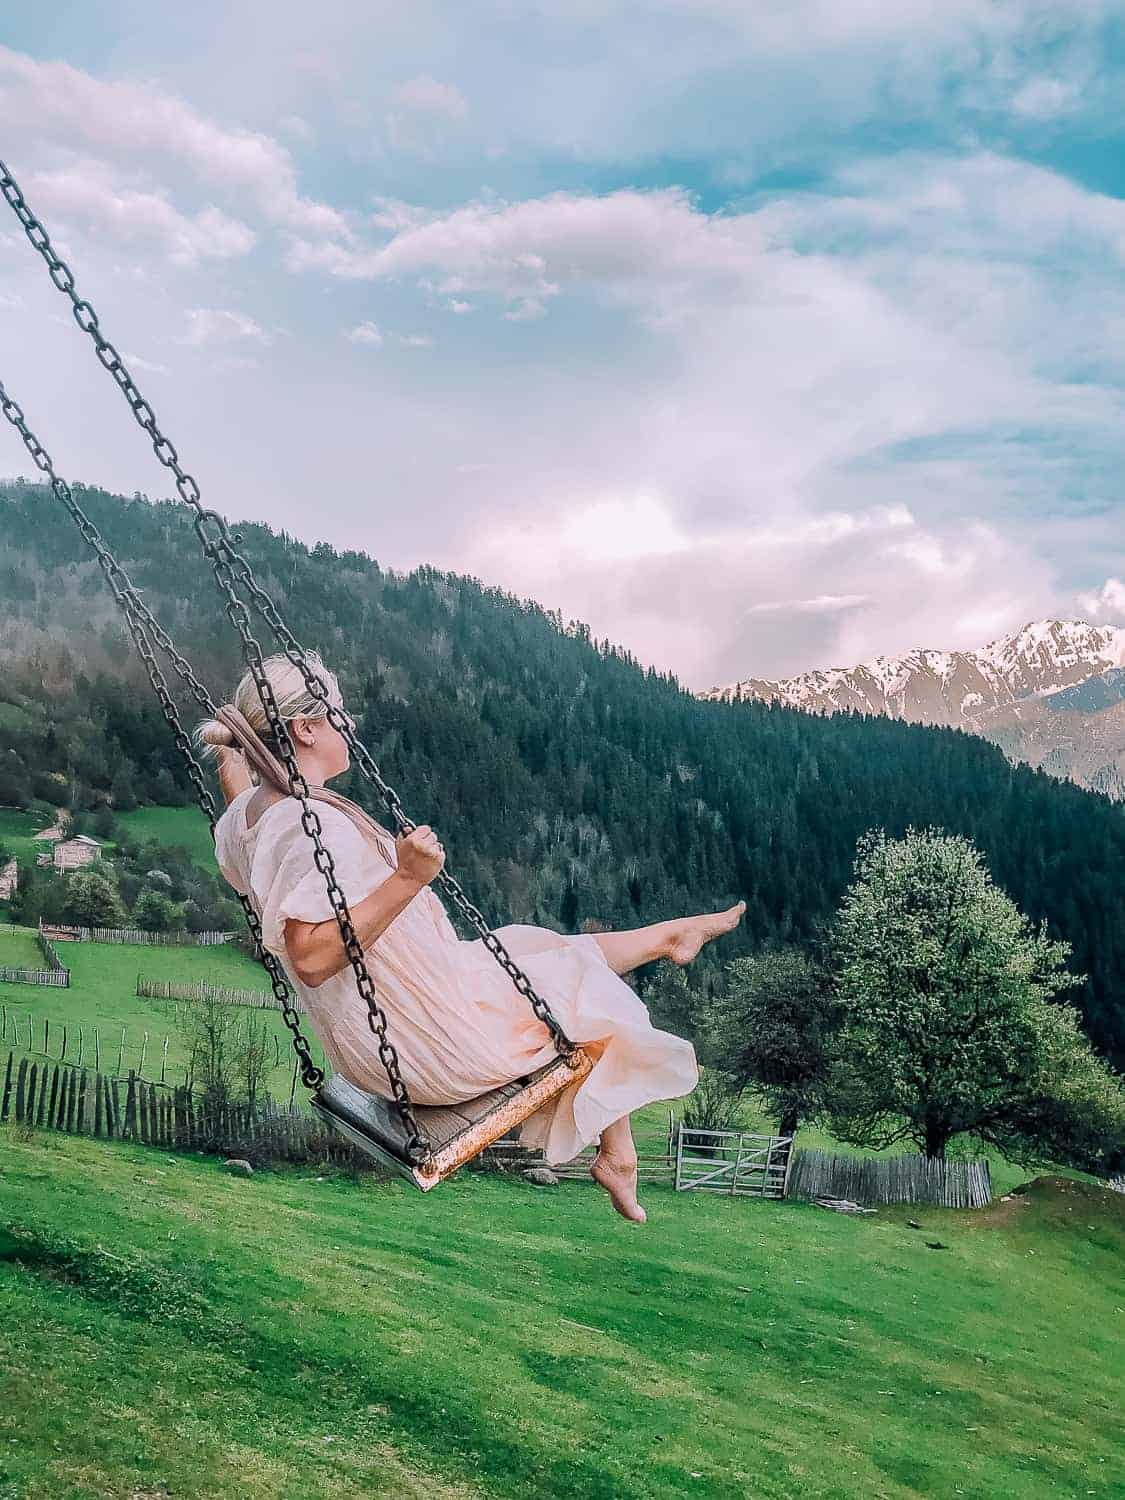 swinging in the mountains